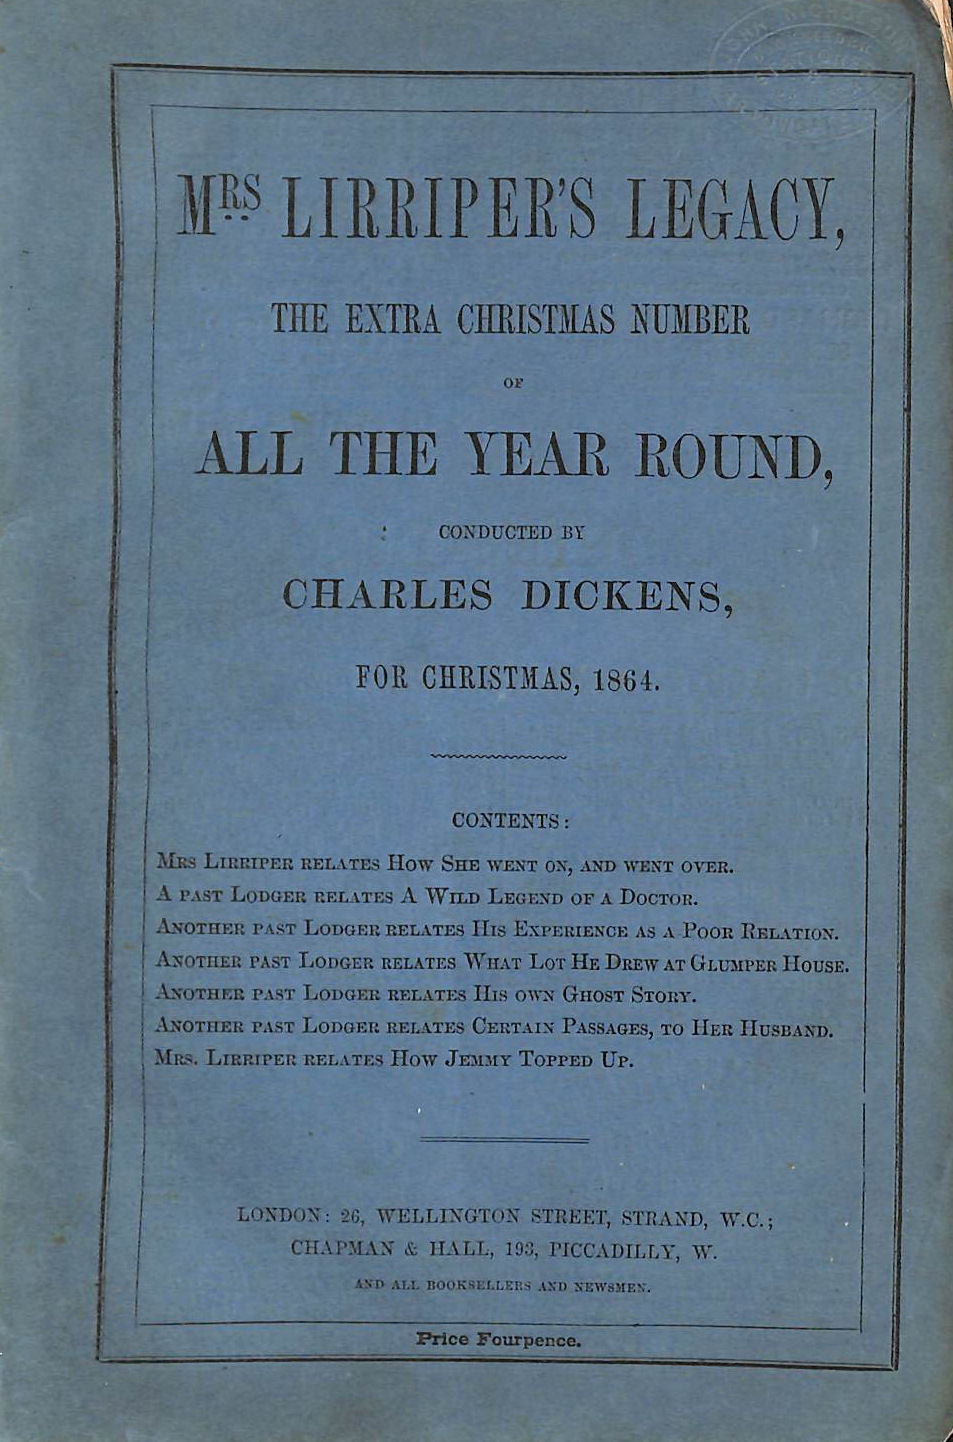 Image for Mrs. Lirriper's Legacy: The Extra Christmas Number Of All The Year Round, Conducted By Charles Dickens For Christmas 1864